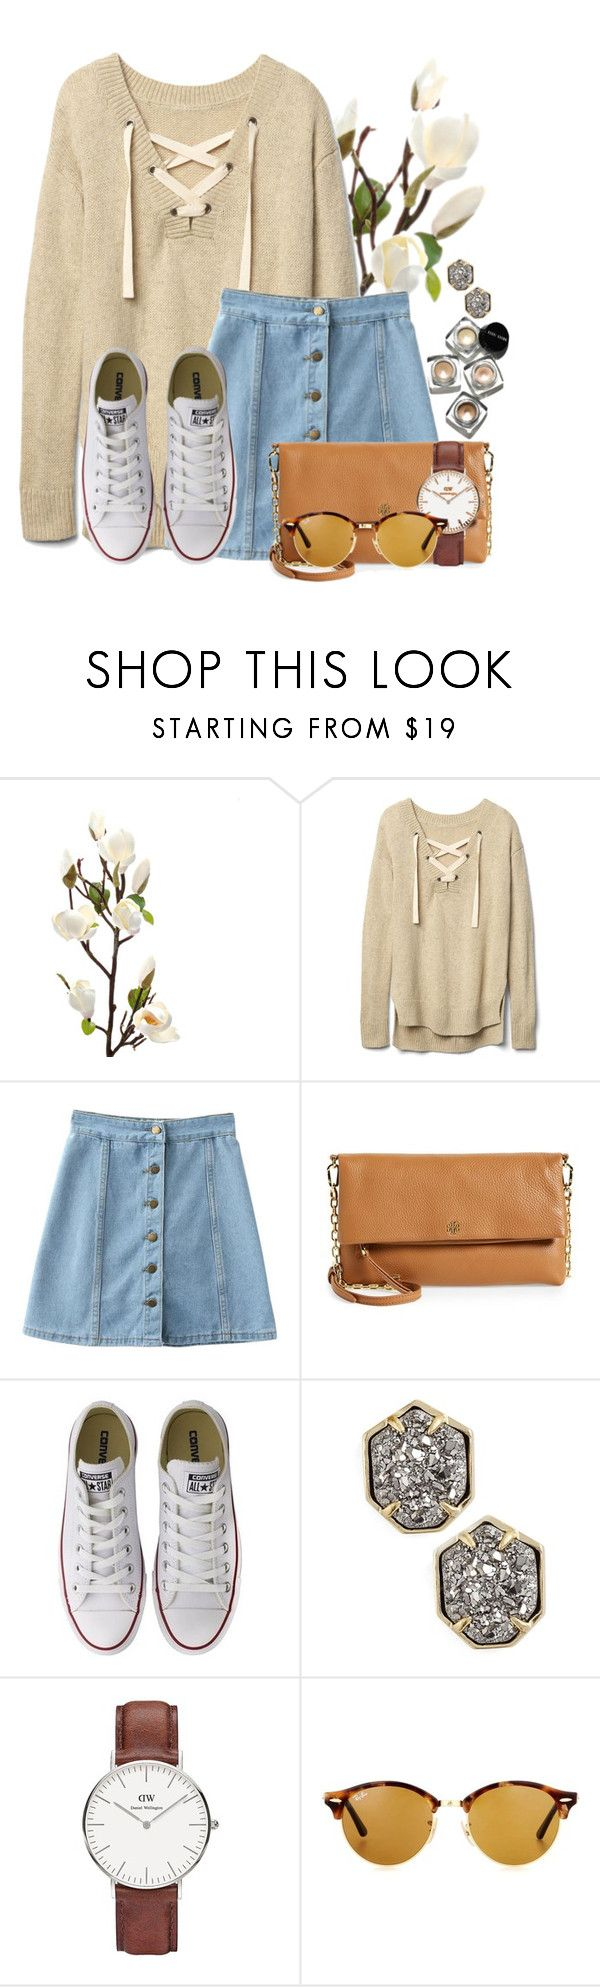 """Good morning Poly⭐️"" by flroasburn ❤ liked on Polyvore featuring Gap, Tory Burch, Converse, Kendra Scott, Bobbi Brown Cosmetics, Daniel Wellington and Ray-Ban"